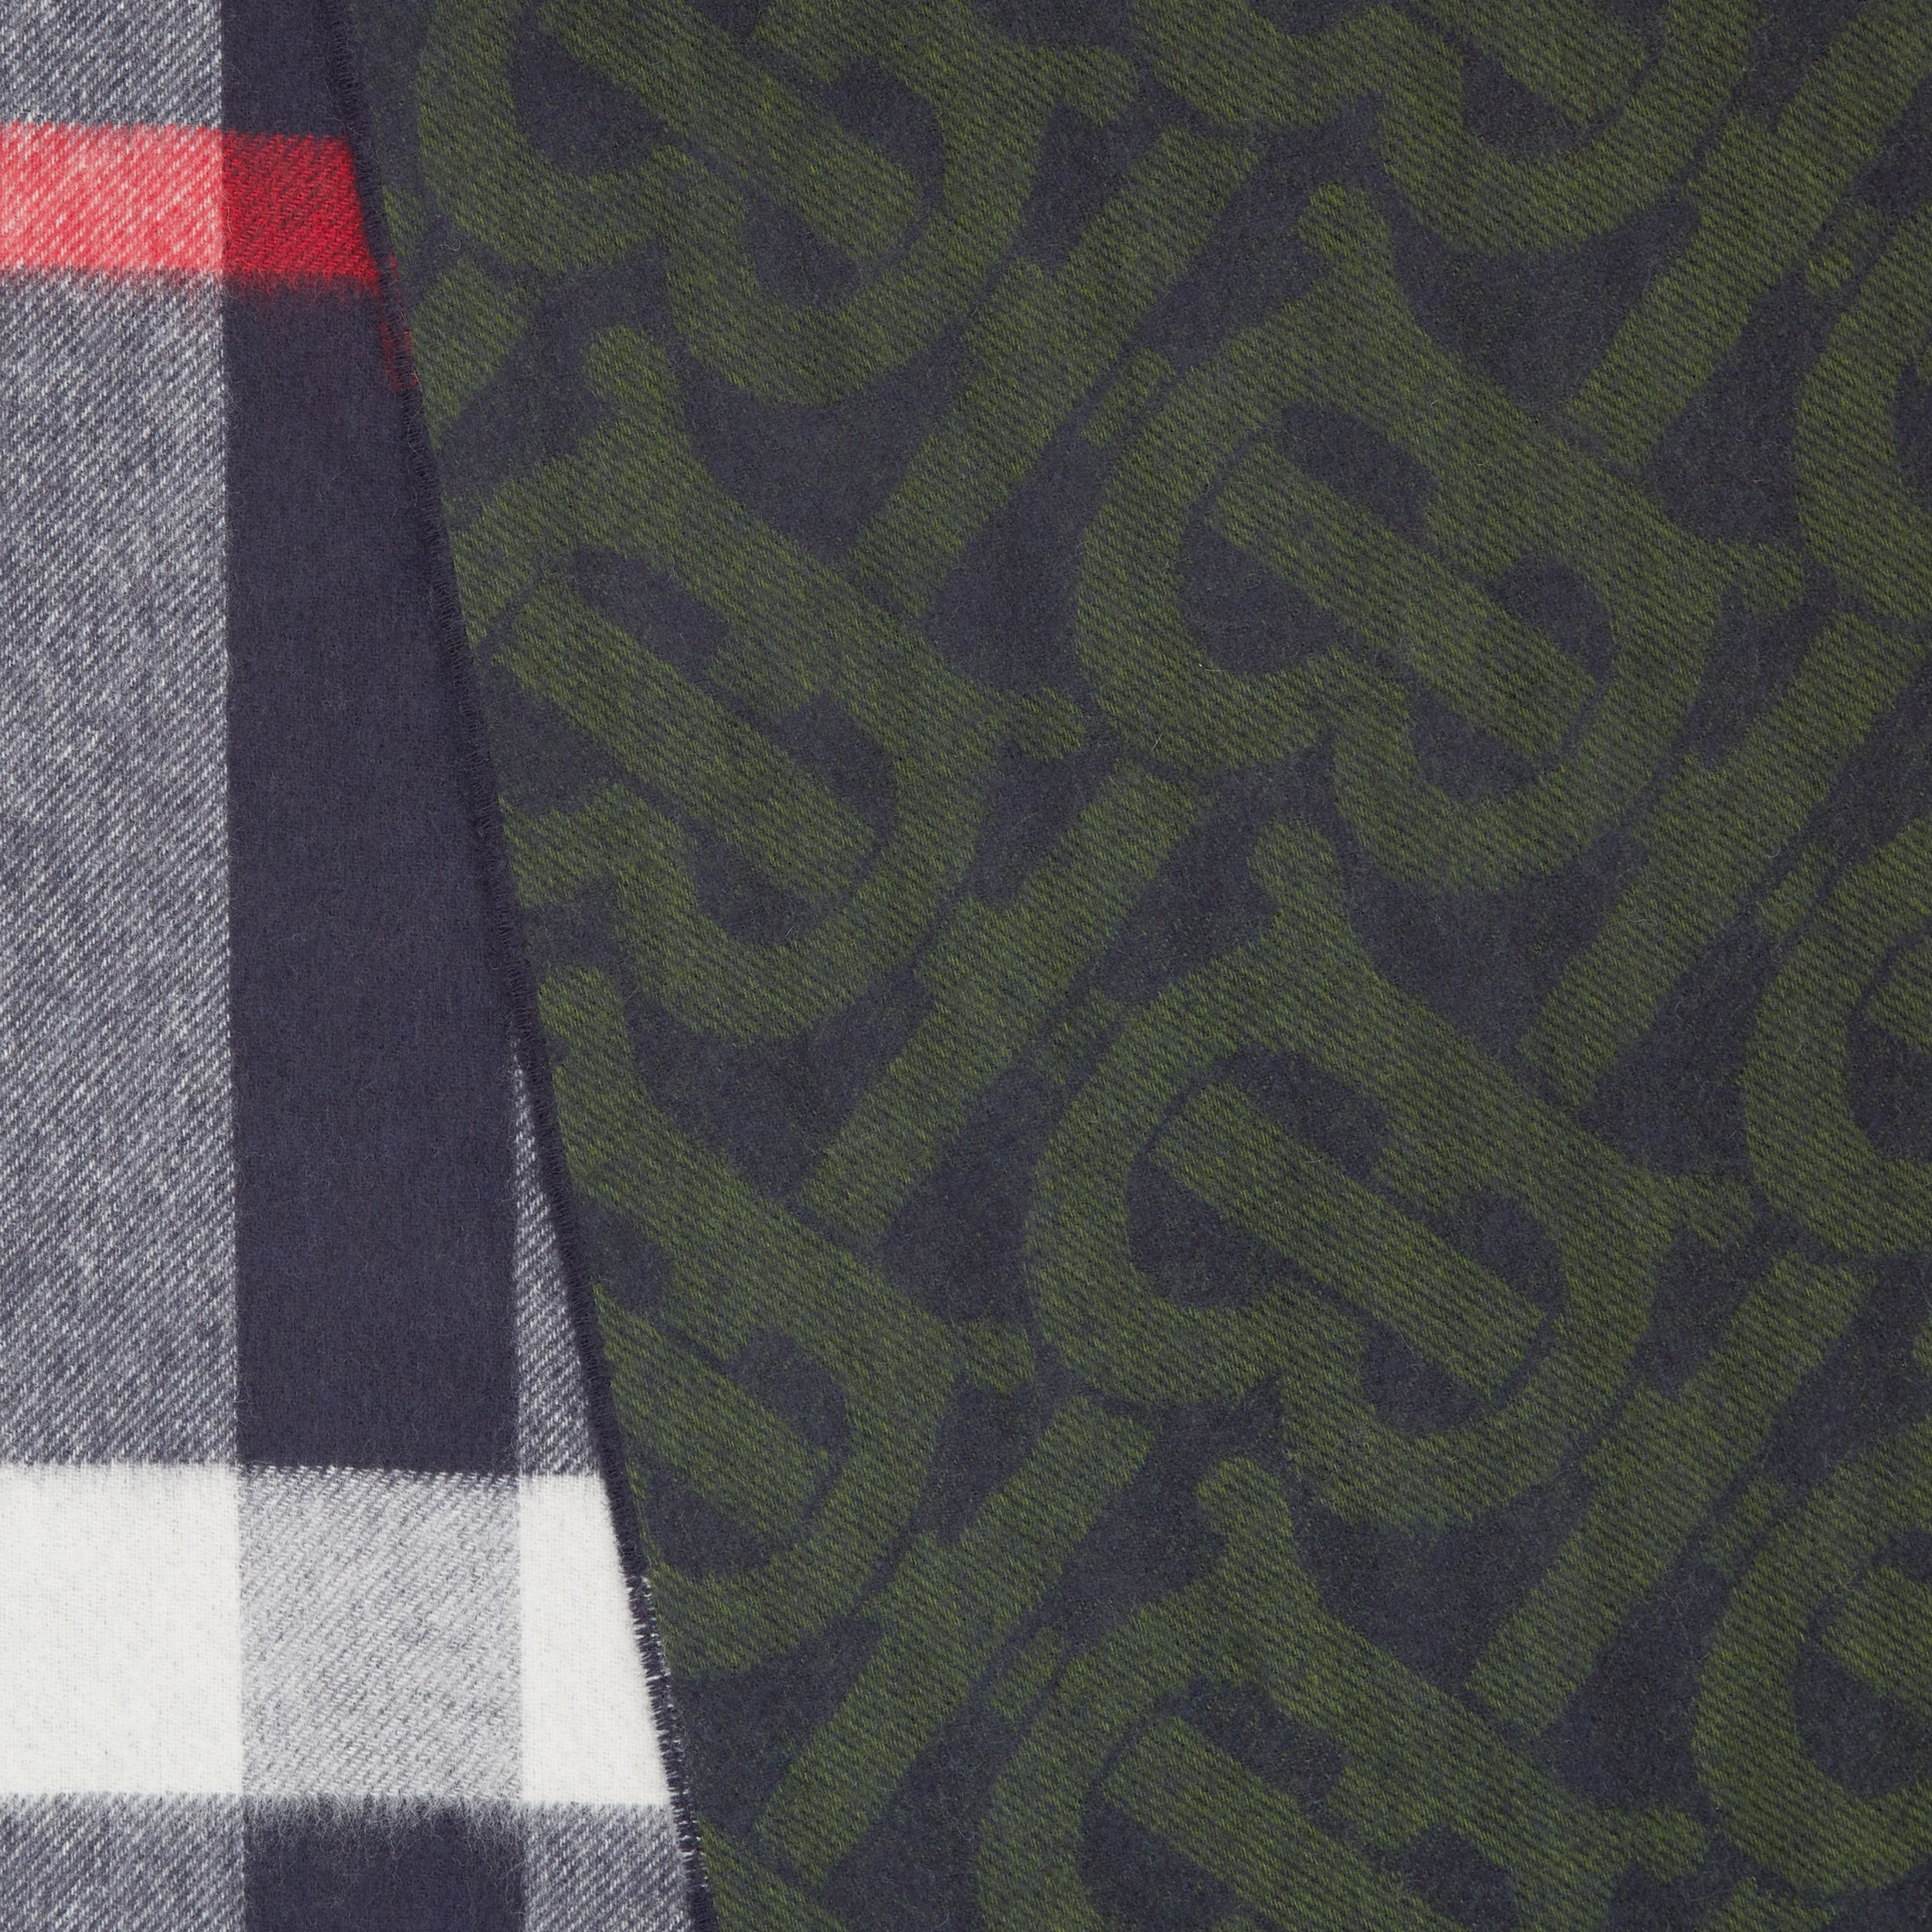 Reversible Check and Monogram Cashmere Scarf in Navy/caper Green | Burberry - 2